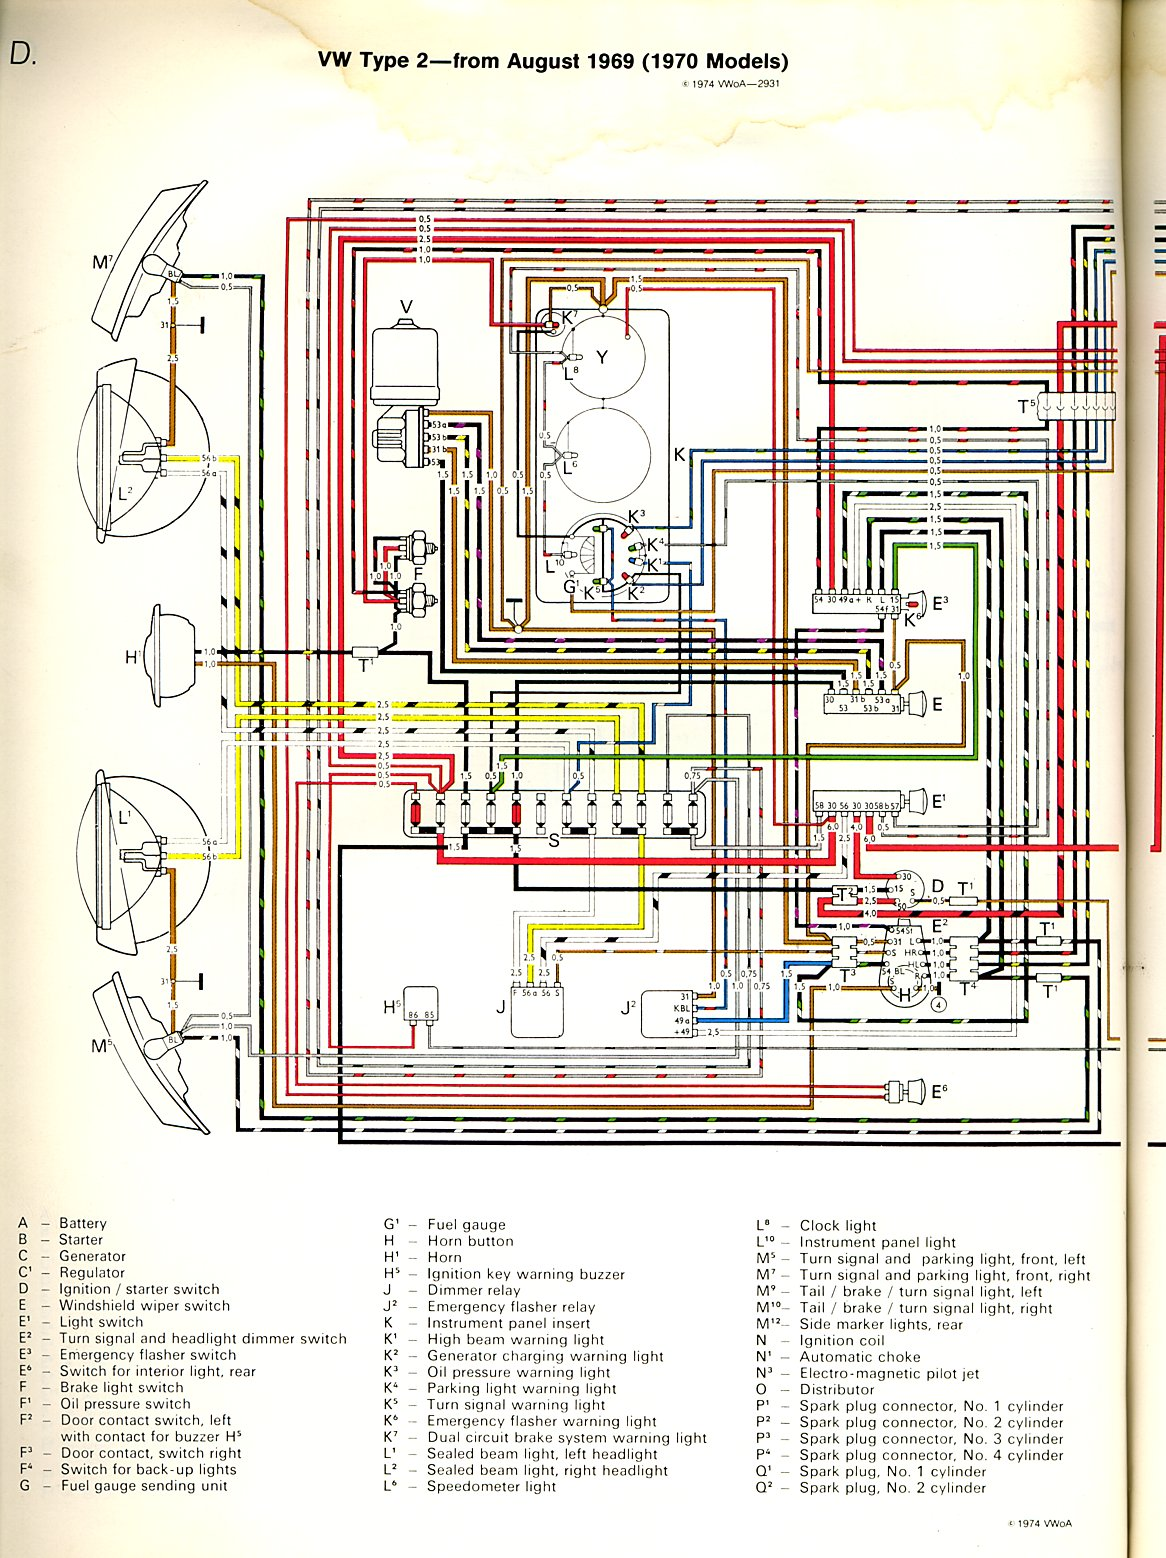 baybus_70a wiring diagram for 1963 vw bus readingrat net 1960 vw bus wiring diagram at fashall.co